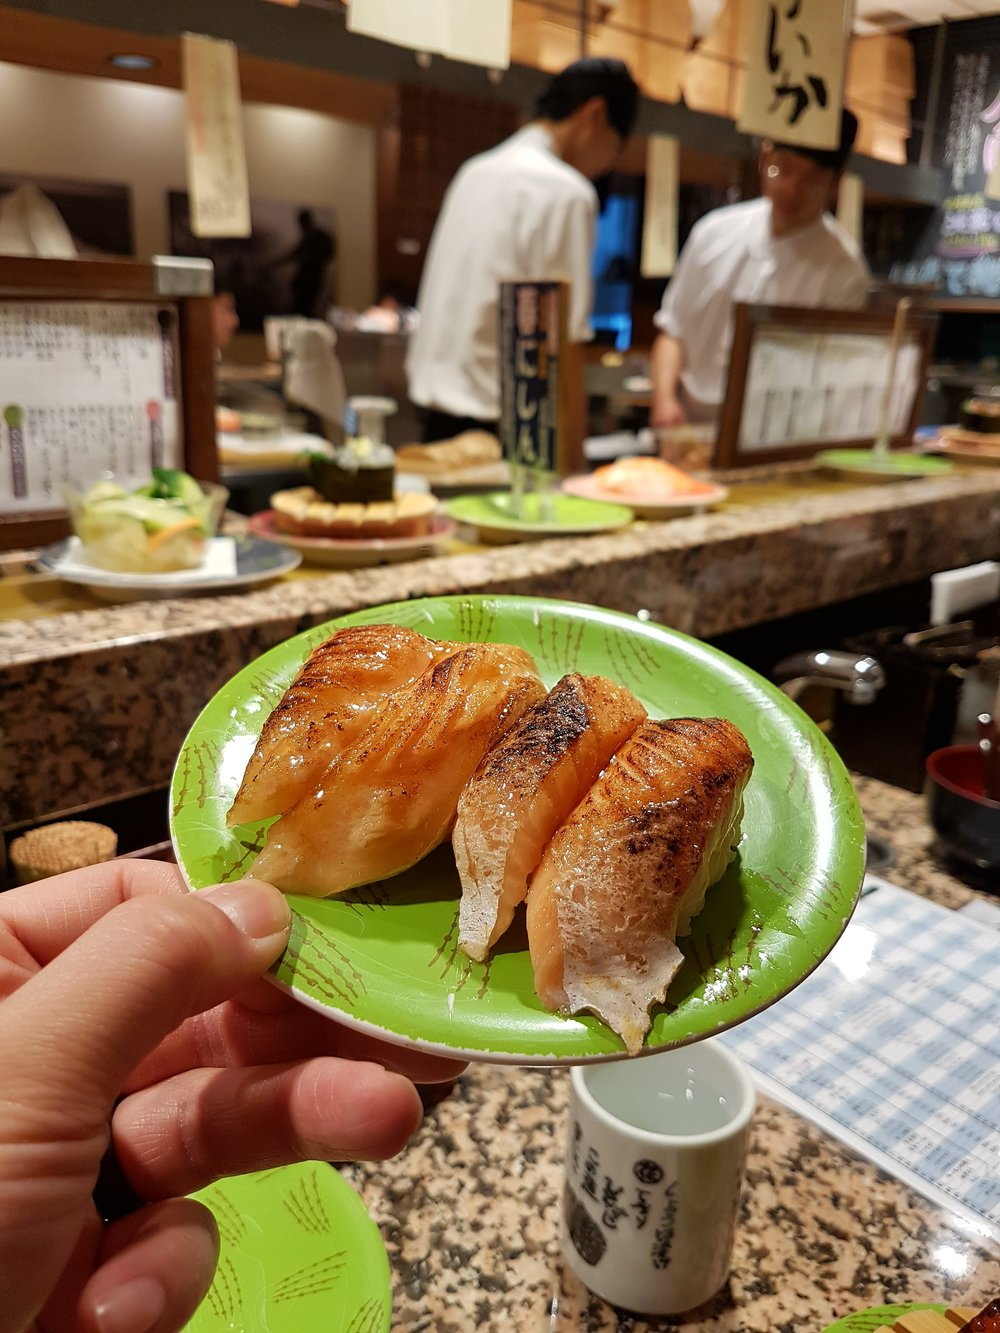 I love Aburi sushi especially at Conveyor Belt Sushi places!